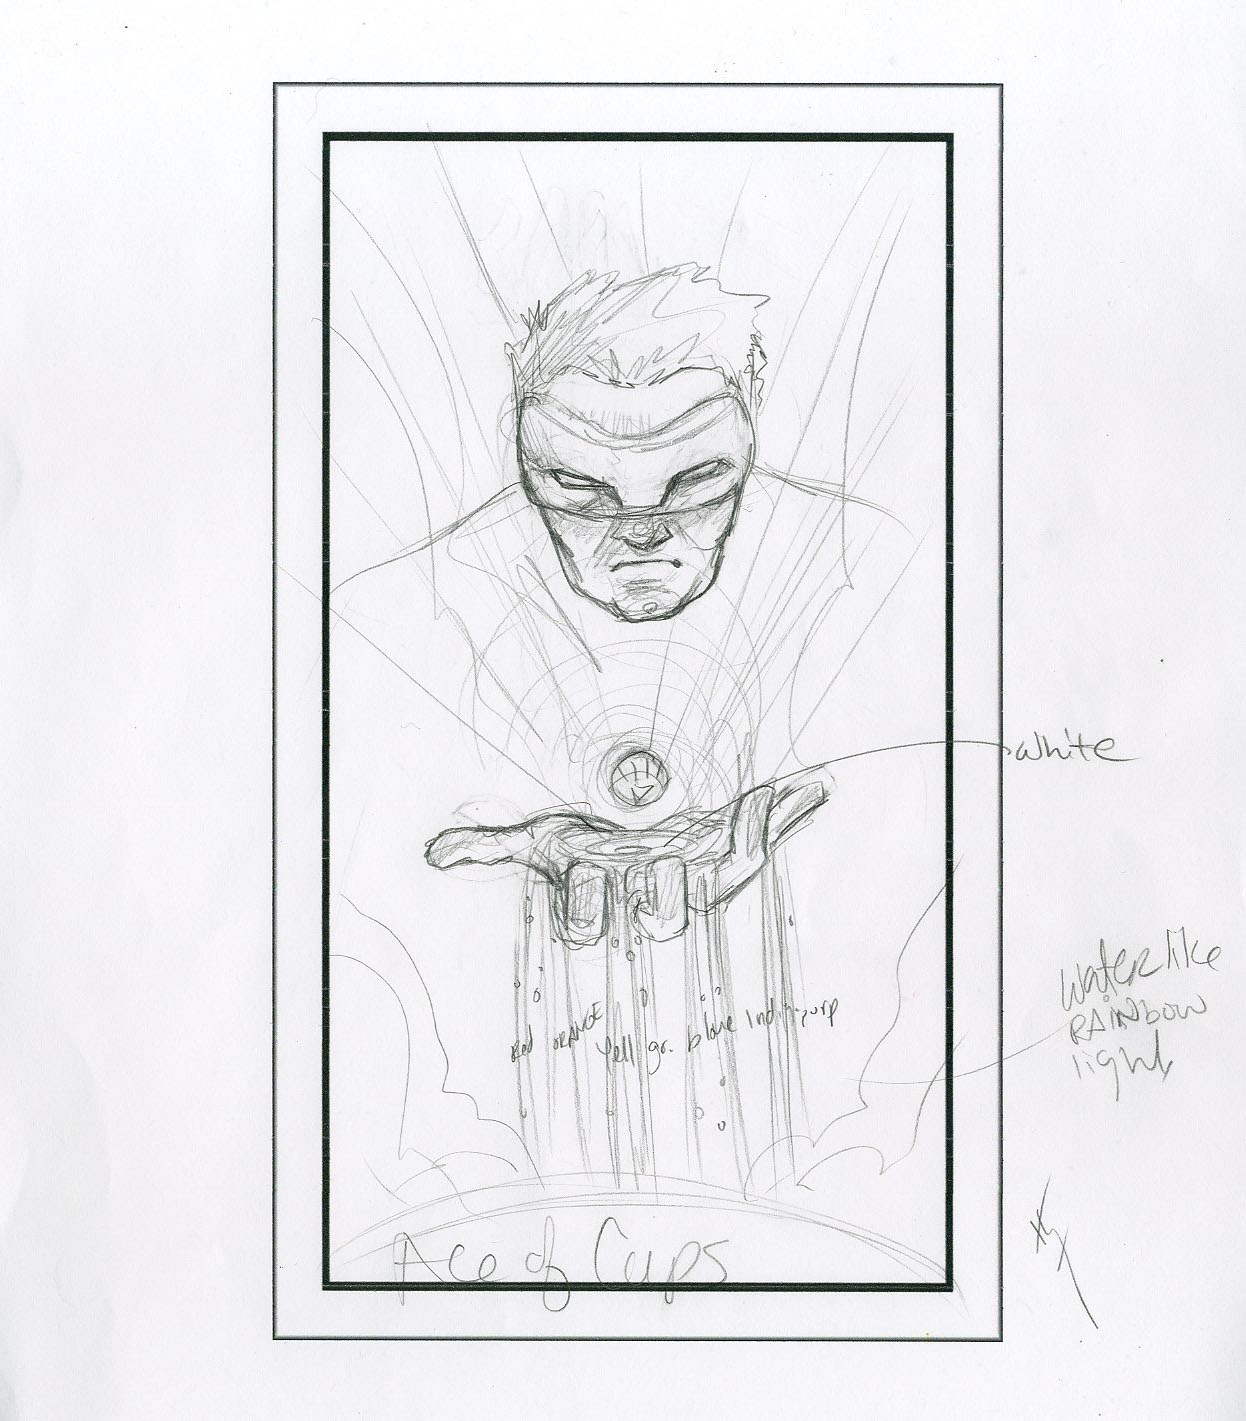 Ace of Cups - White Lantern prelim from The Art of Sara Richard